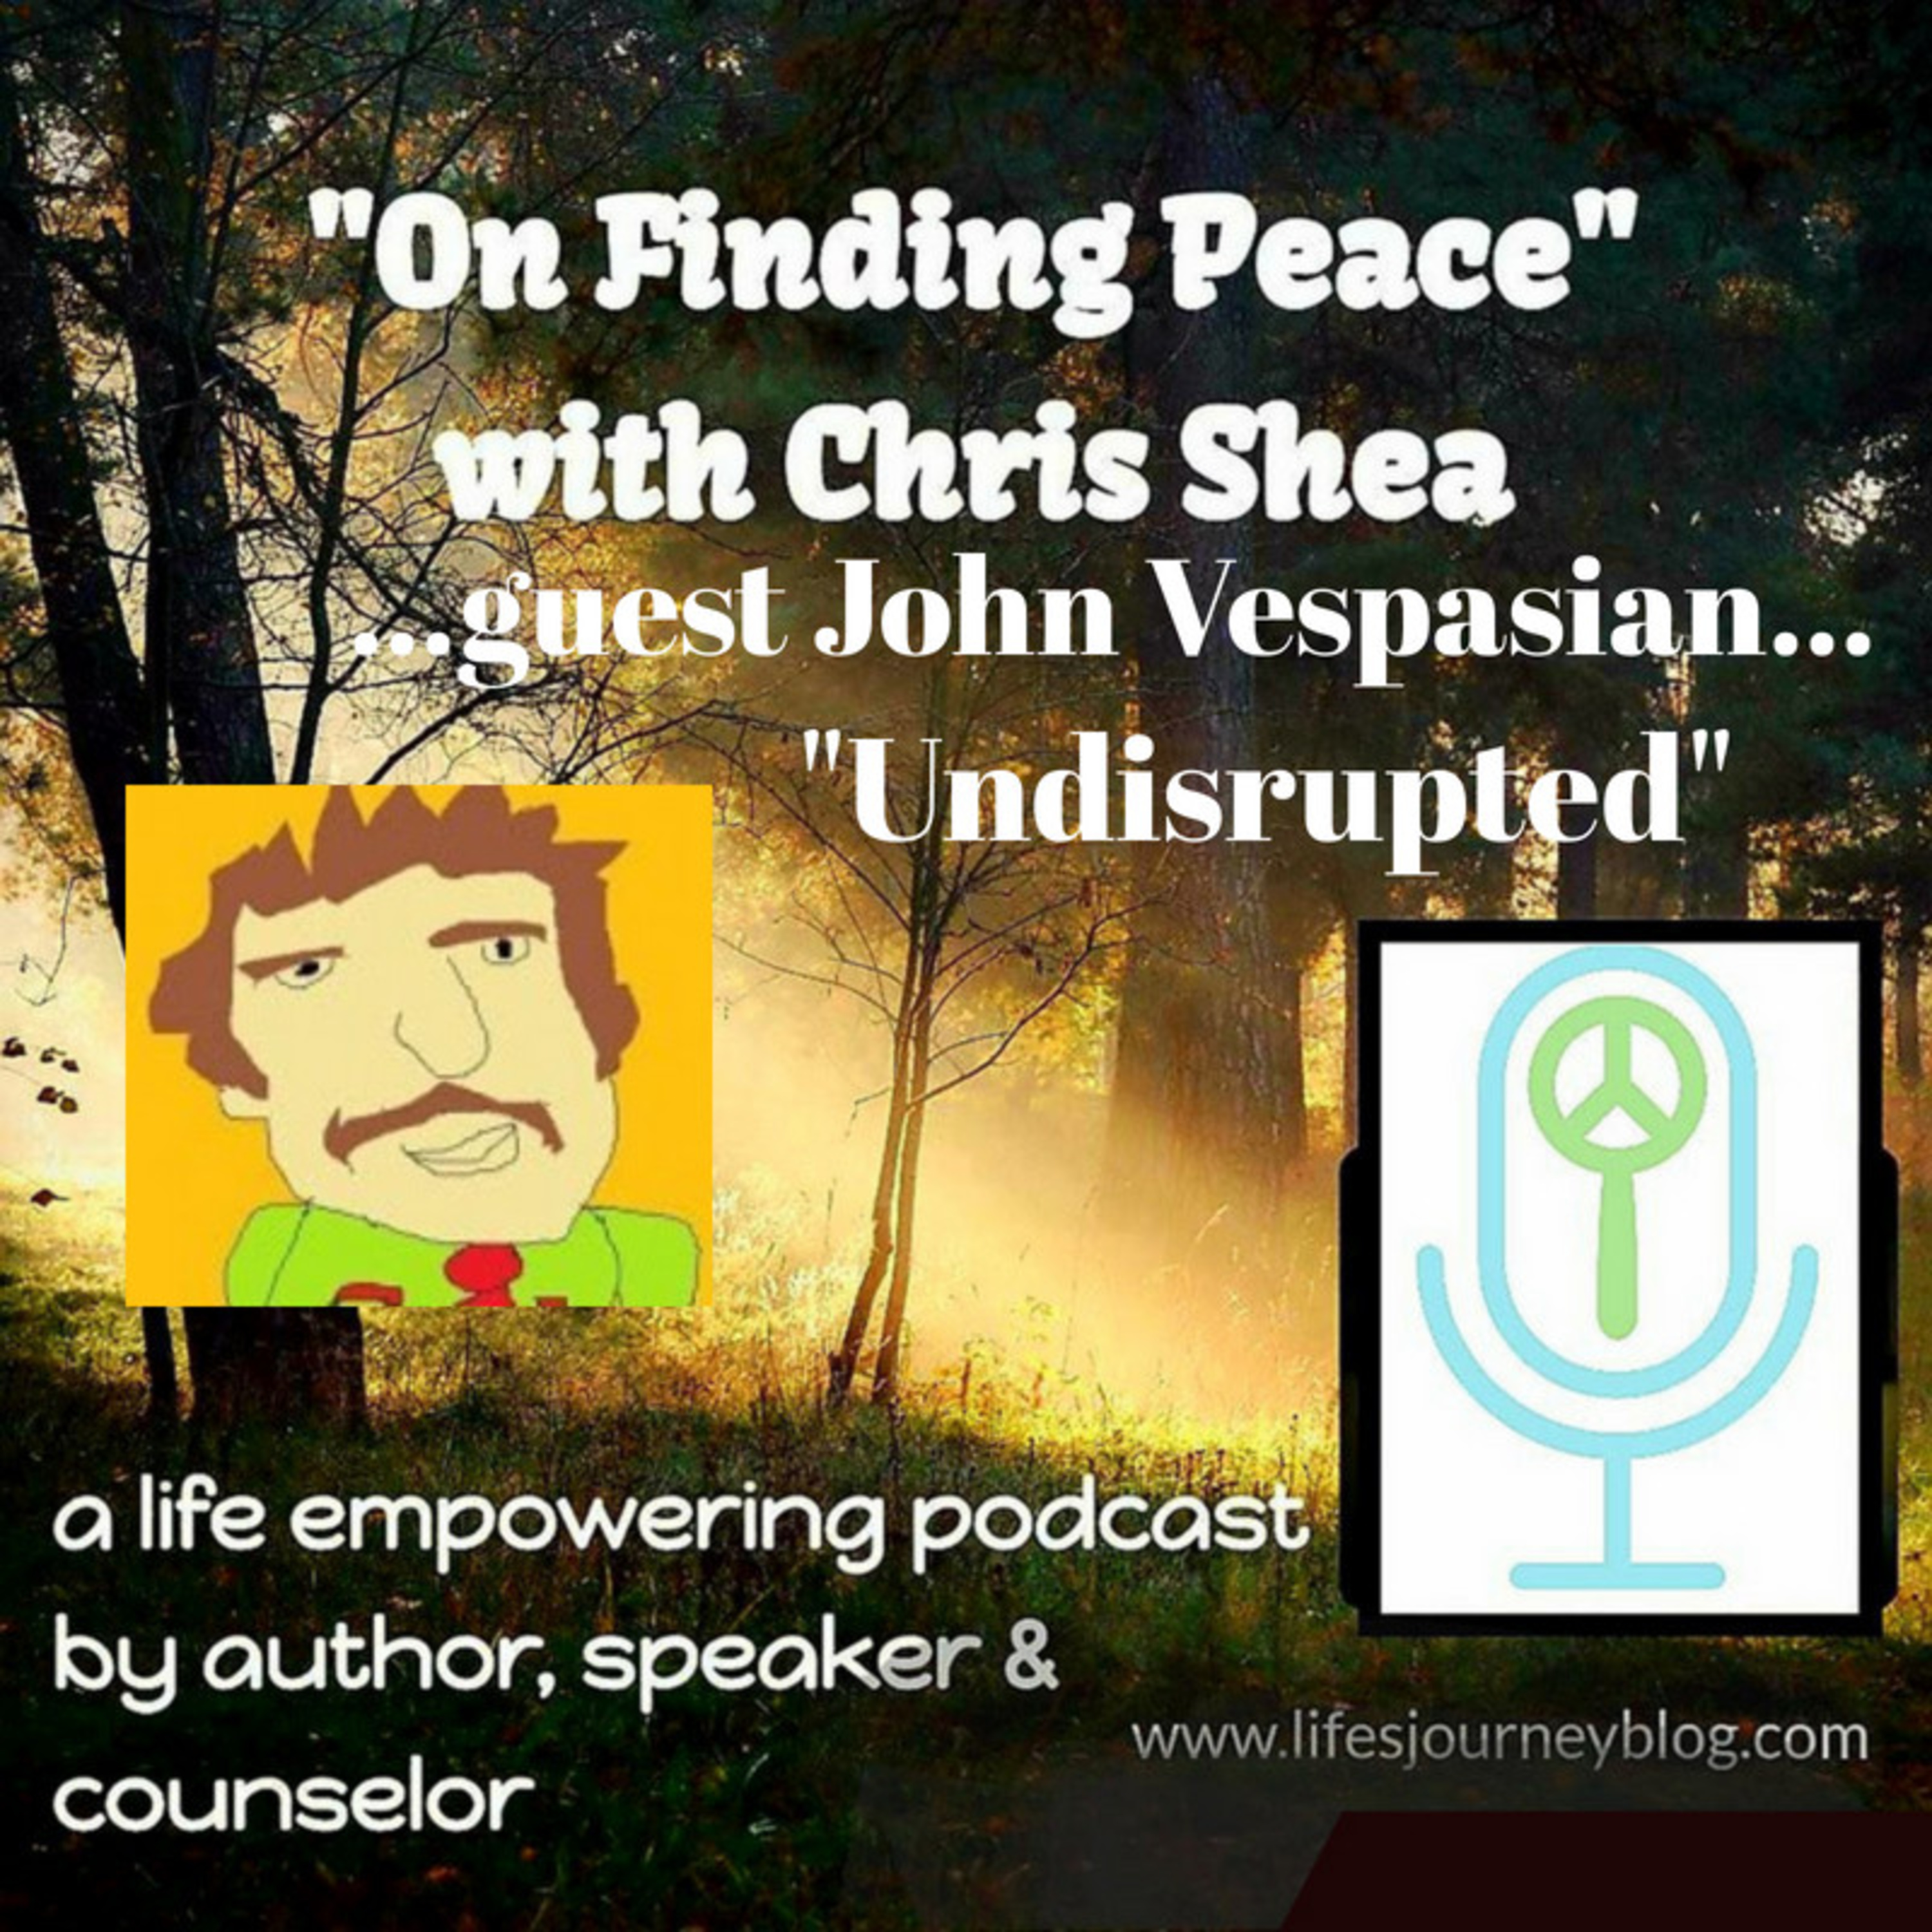 Undisrupted - an interview with John Vespasian